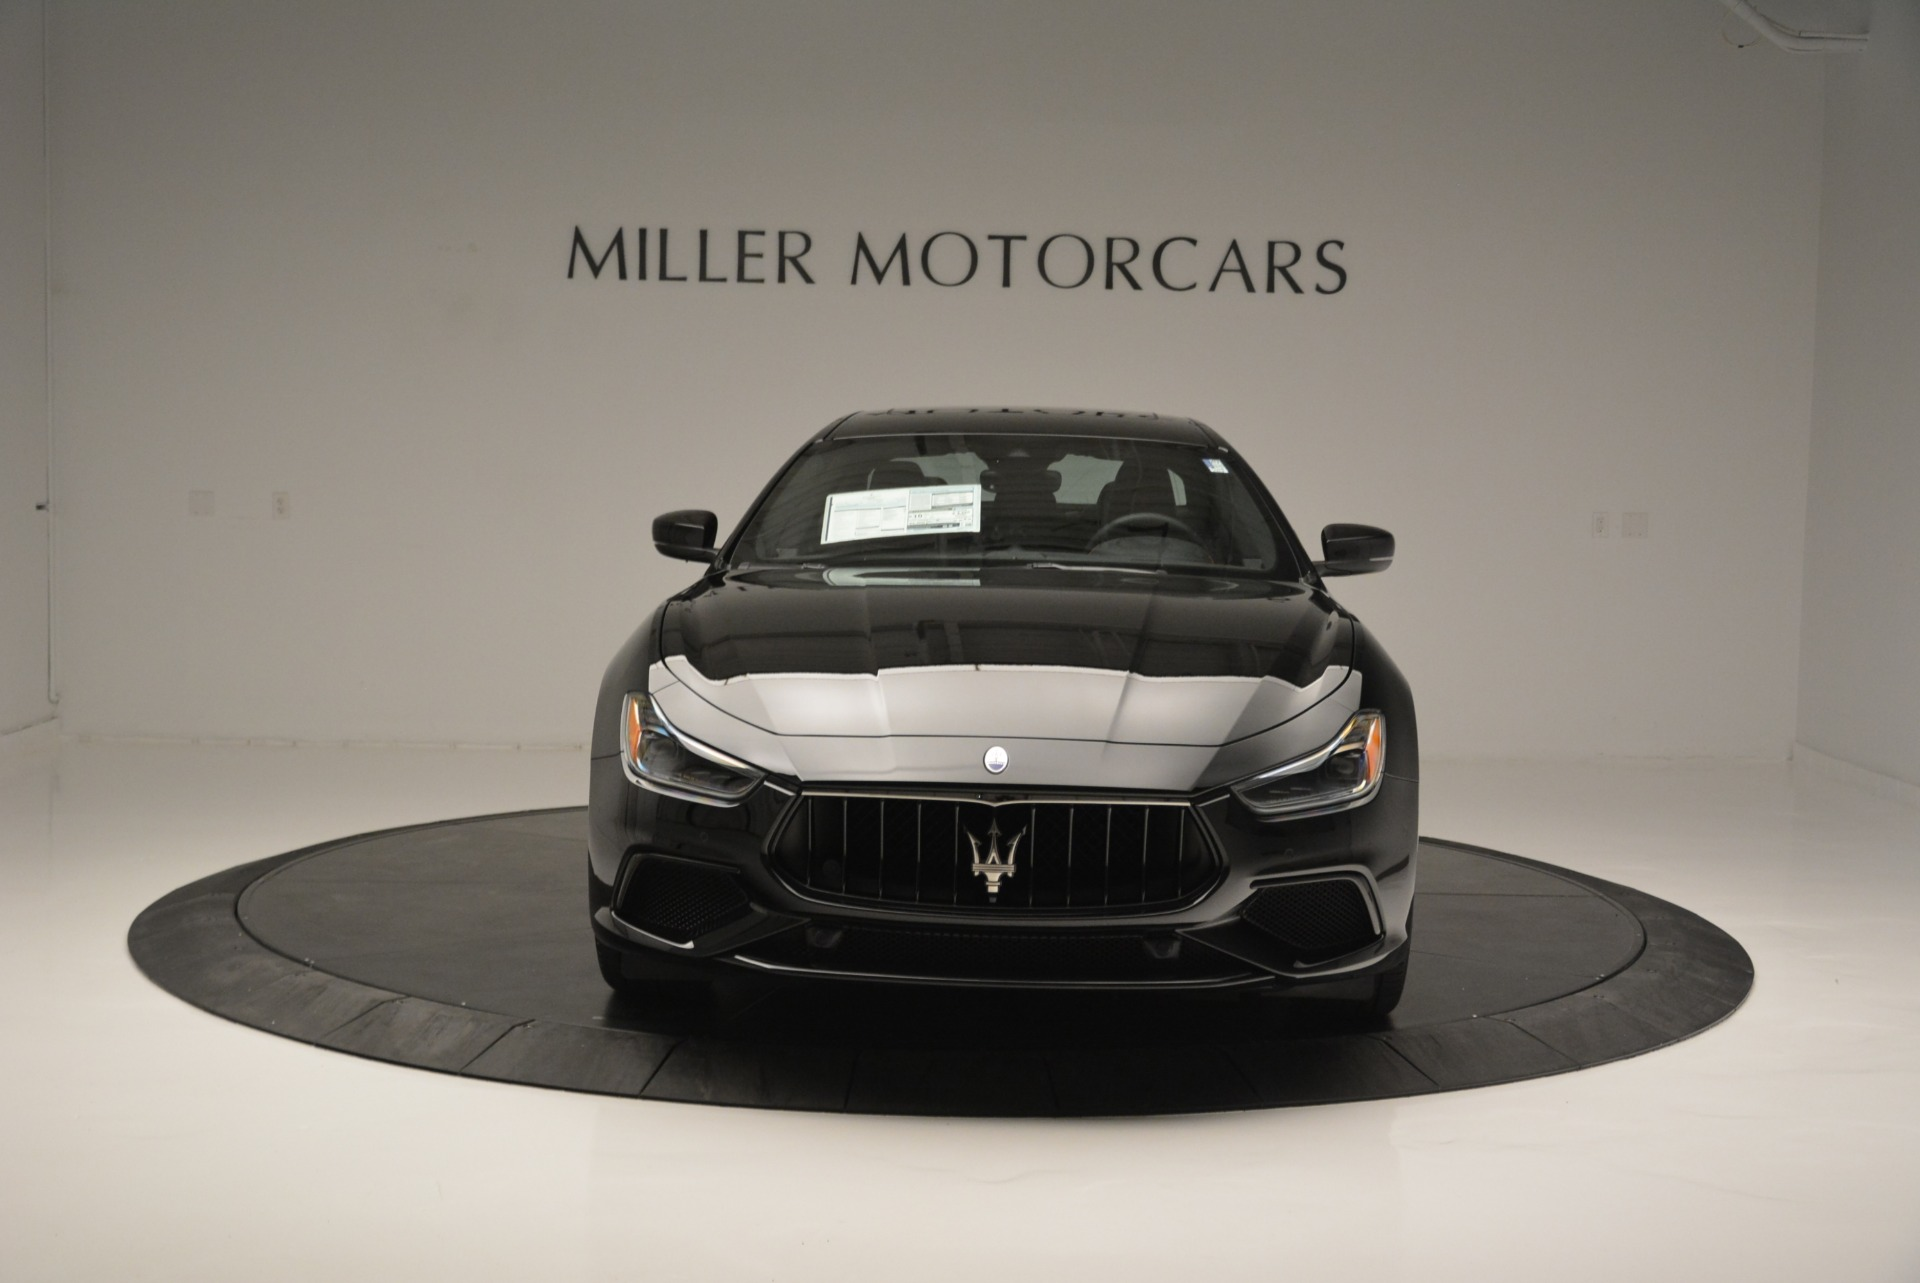 New 2018 Maserati Ghibli SQ4 GranSport Nerissimo For Sale In Westport, CT 2366_p12